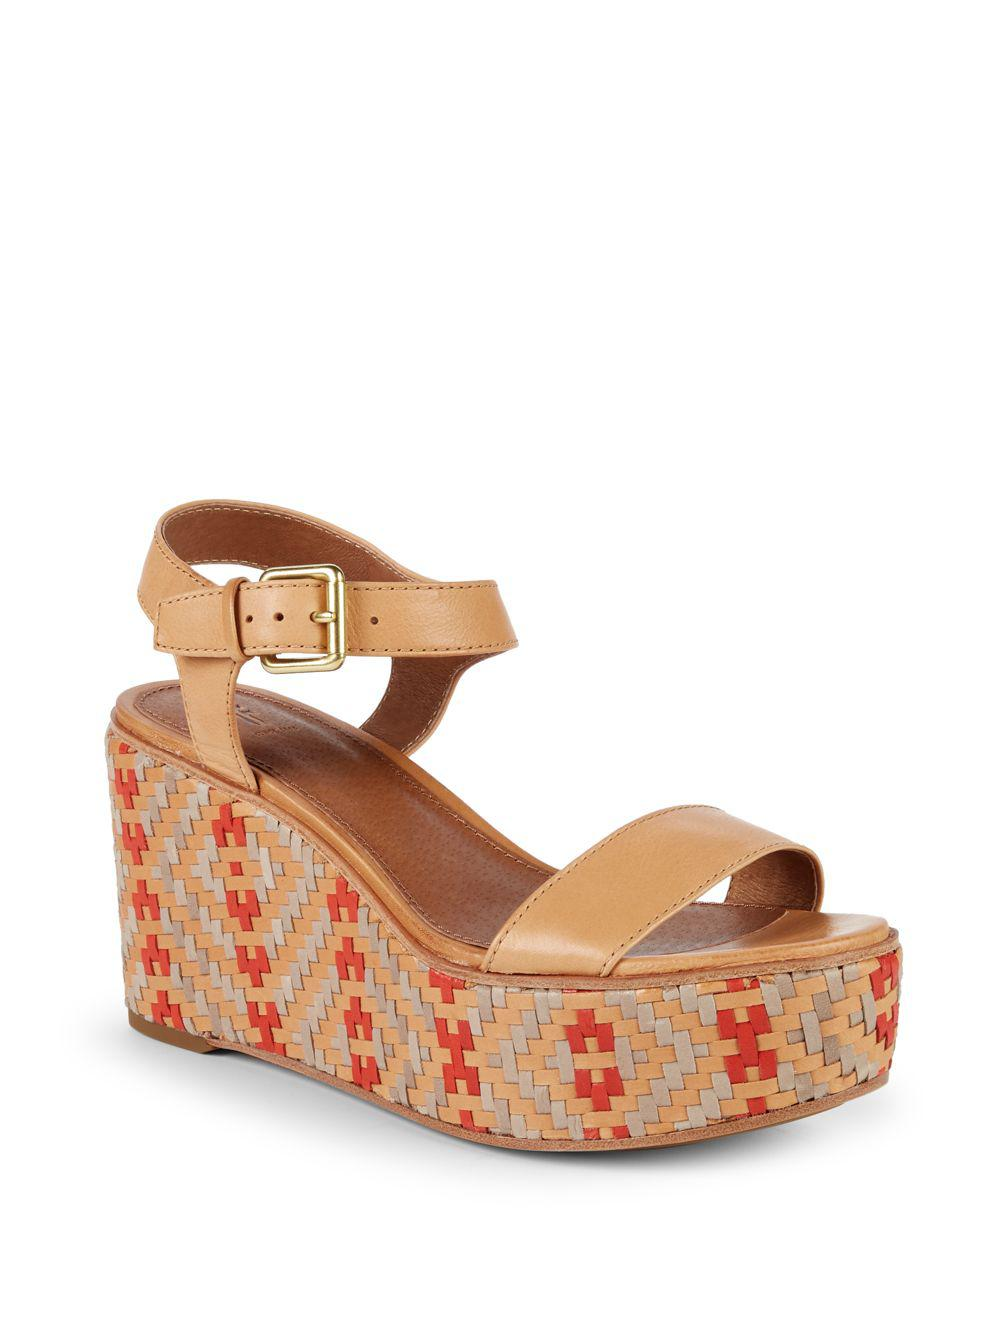 8b690afc36d Women's Brown Heather Woven Leather Wedge Sandal